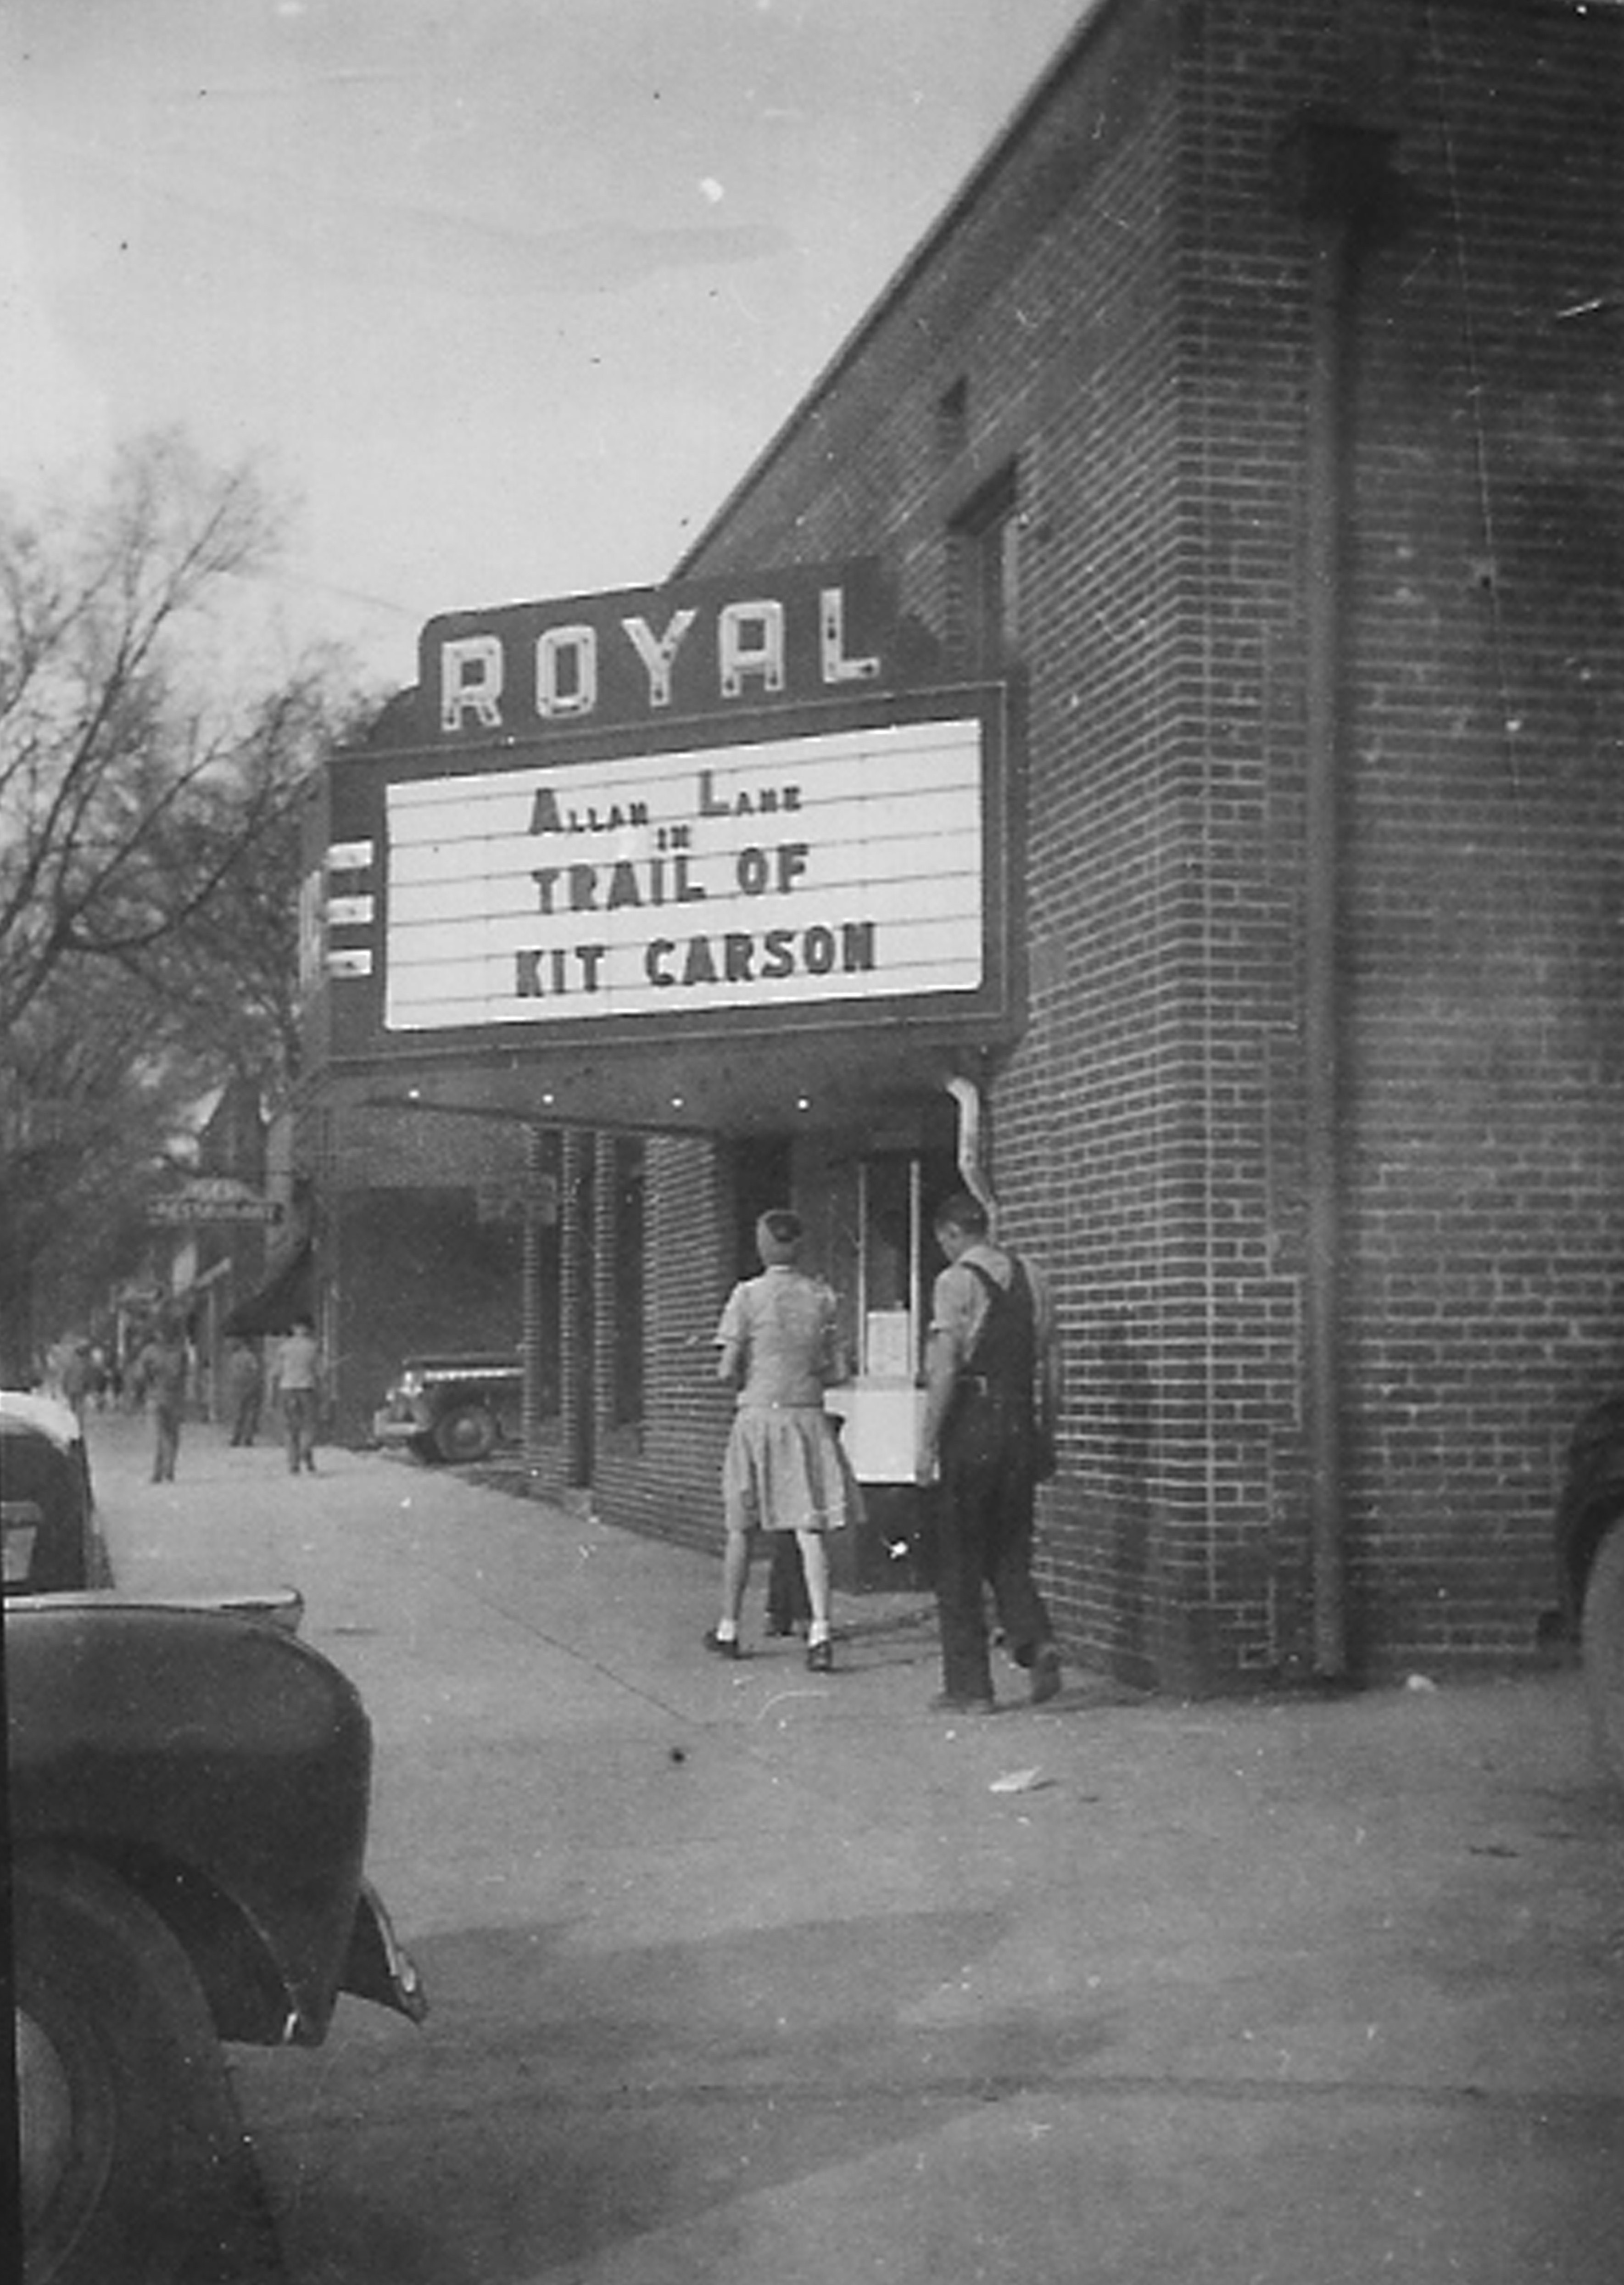 royal theater exterior